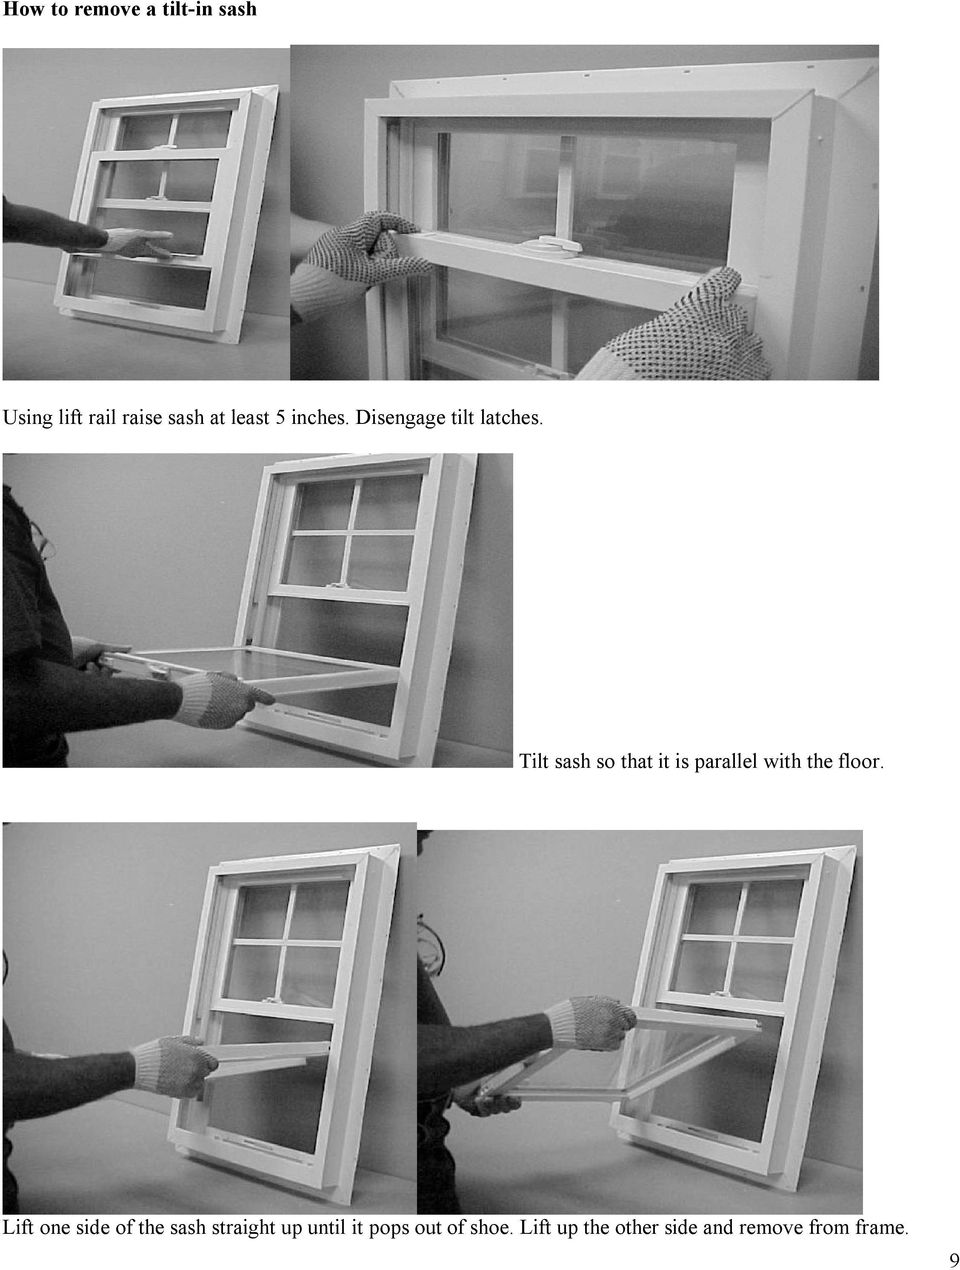 Tilt sash so that it is parallel with the floor.